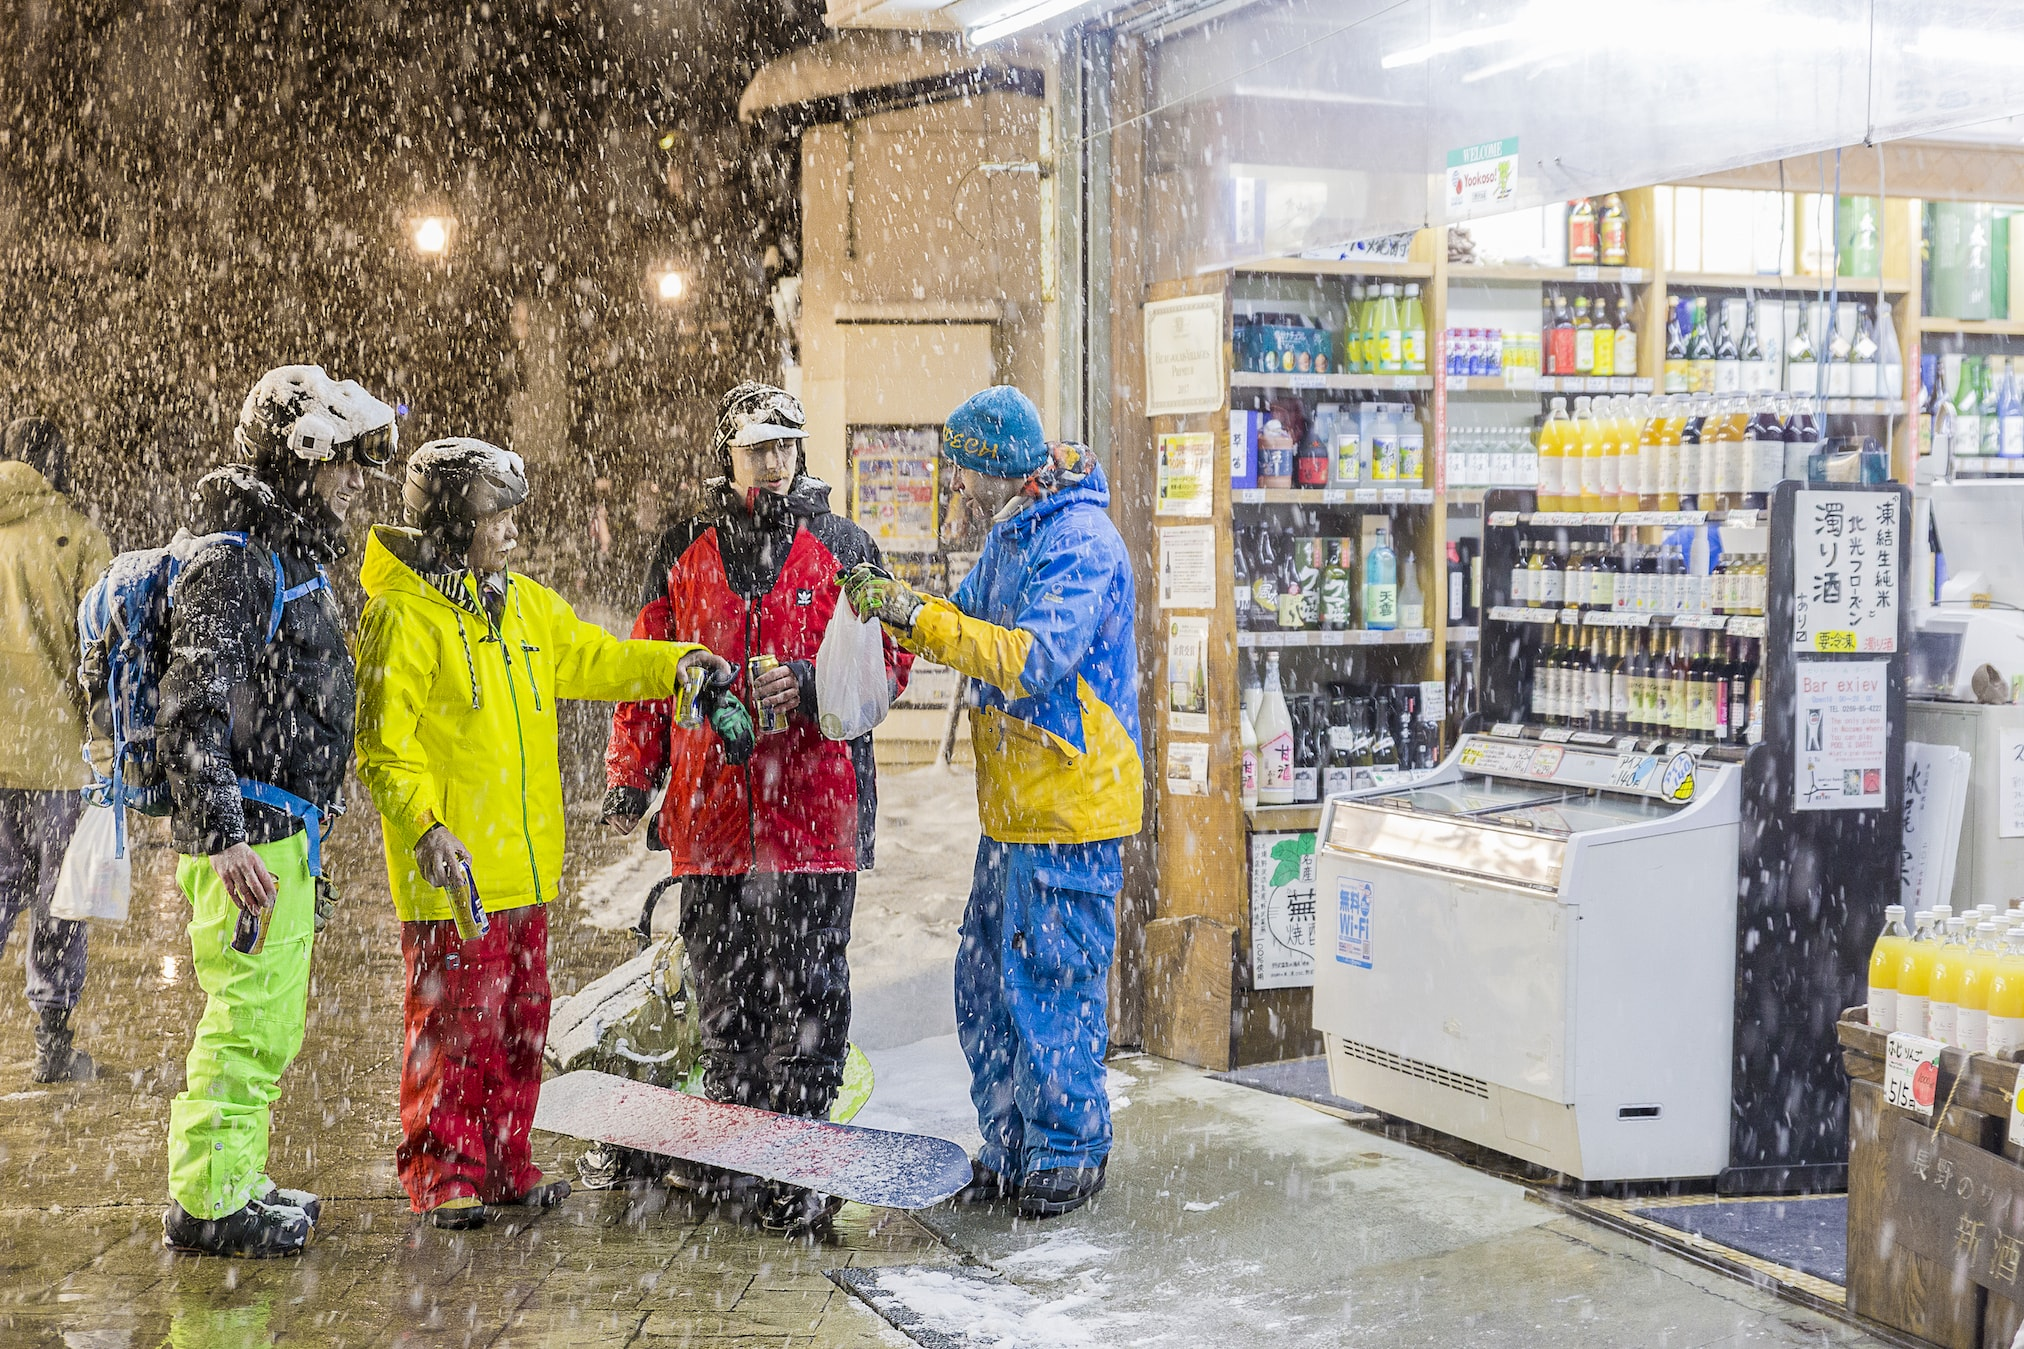 apres ski drink while it's snowing hard in Nozawa Onsen with First Tours